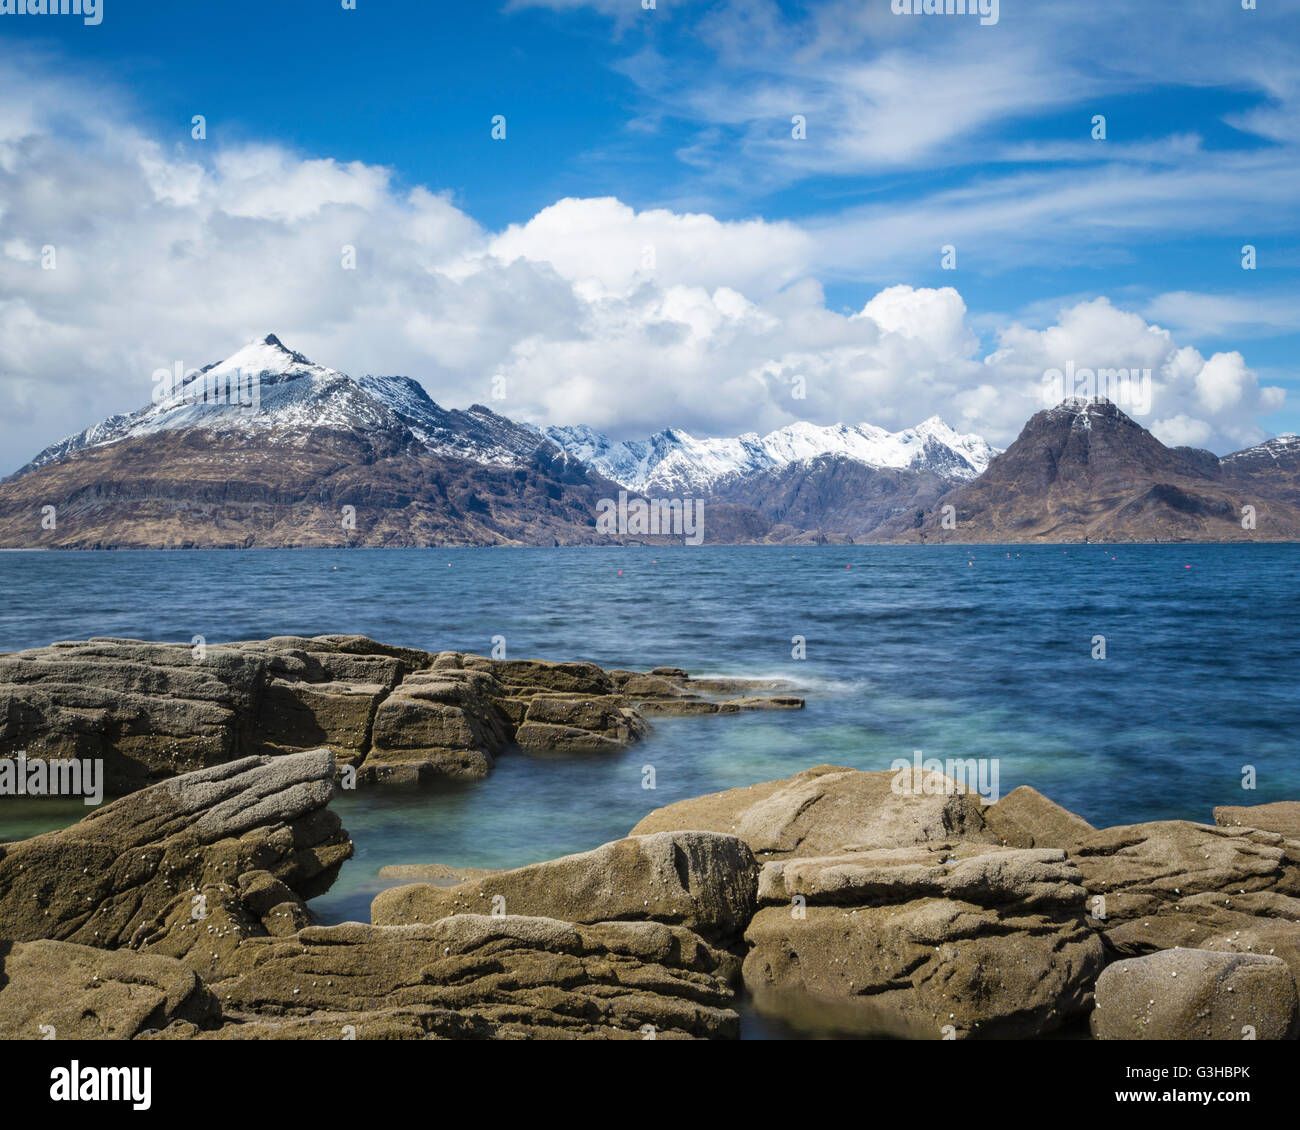 Loch Scavaig and the snow covered summits of the Cuillin Ridge, Elgol, Isle of Skye, Scotland - Stock Image